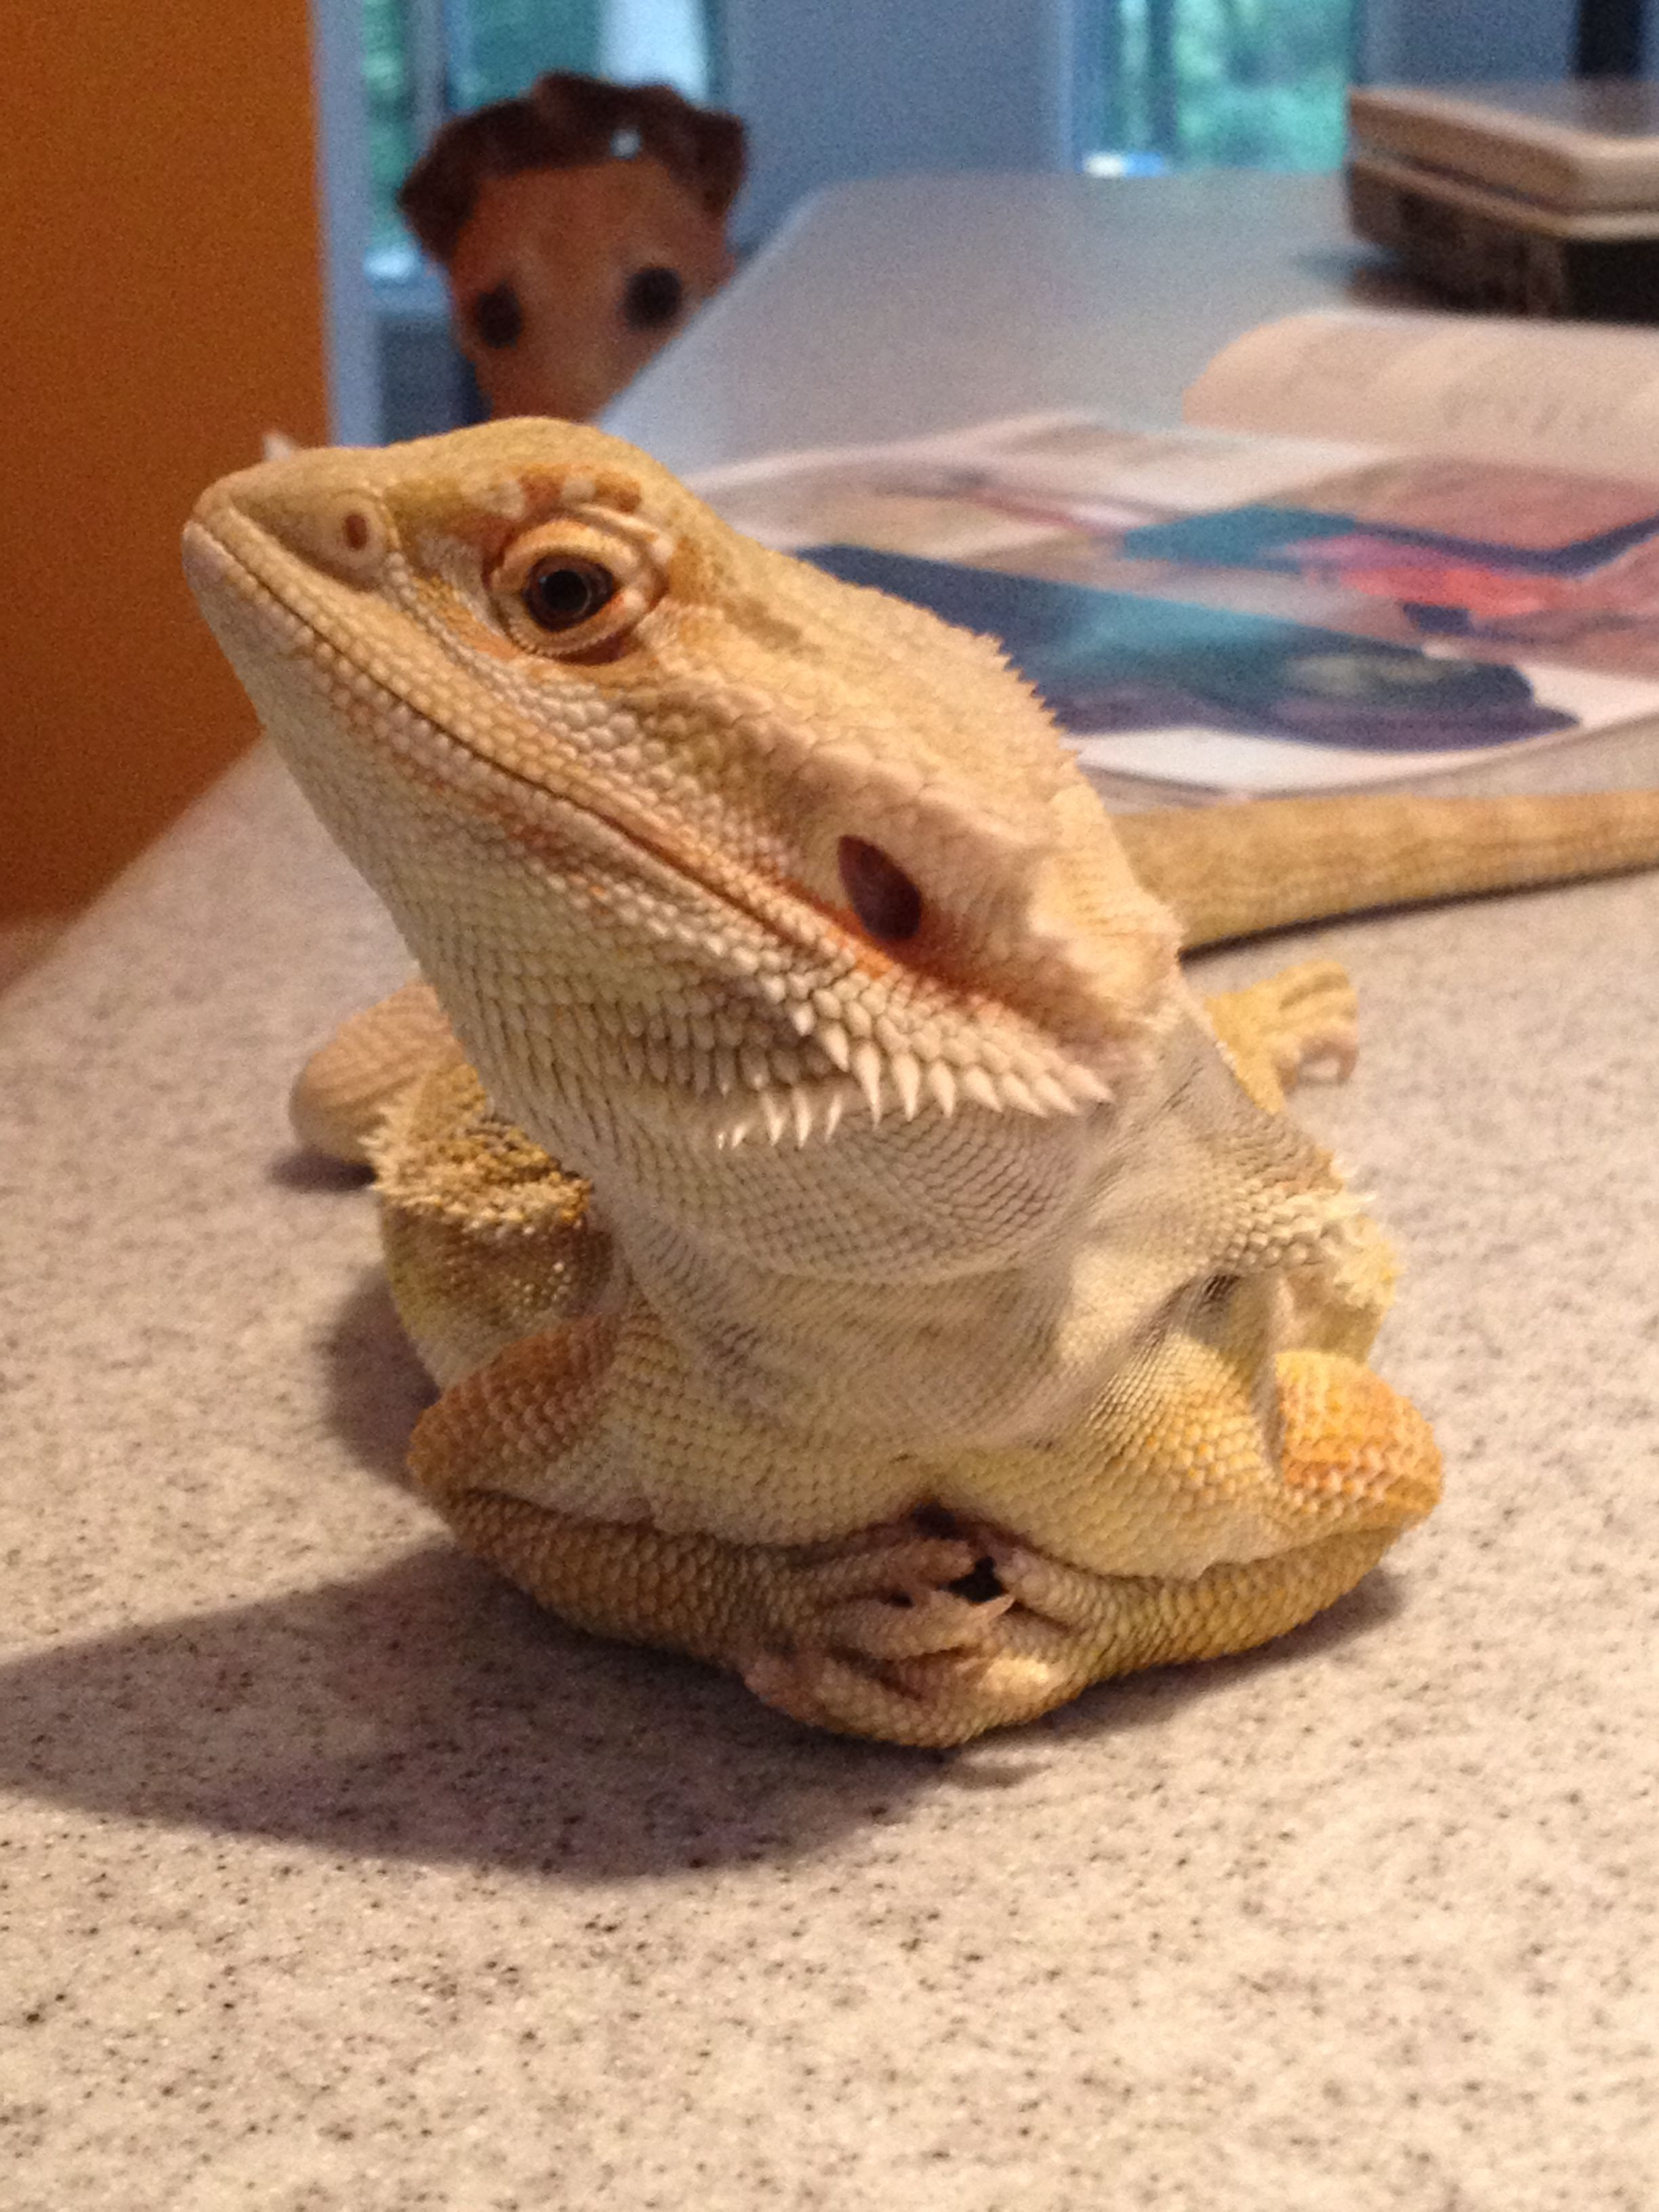 Live Crickets for Sale - Ghann's Live Crickets for Reptile ...